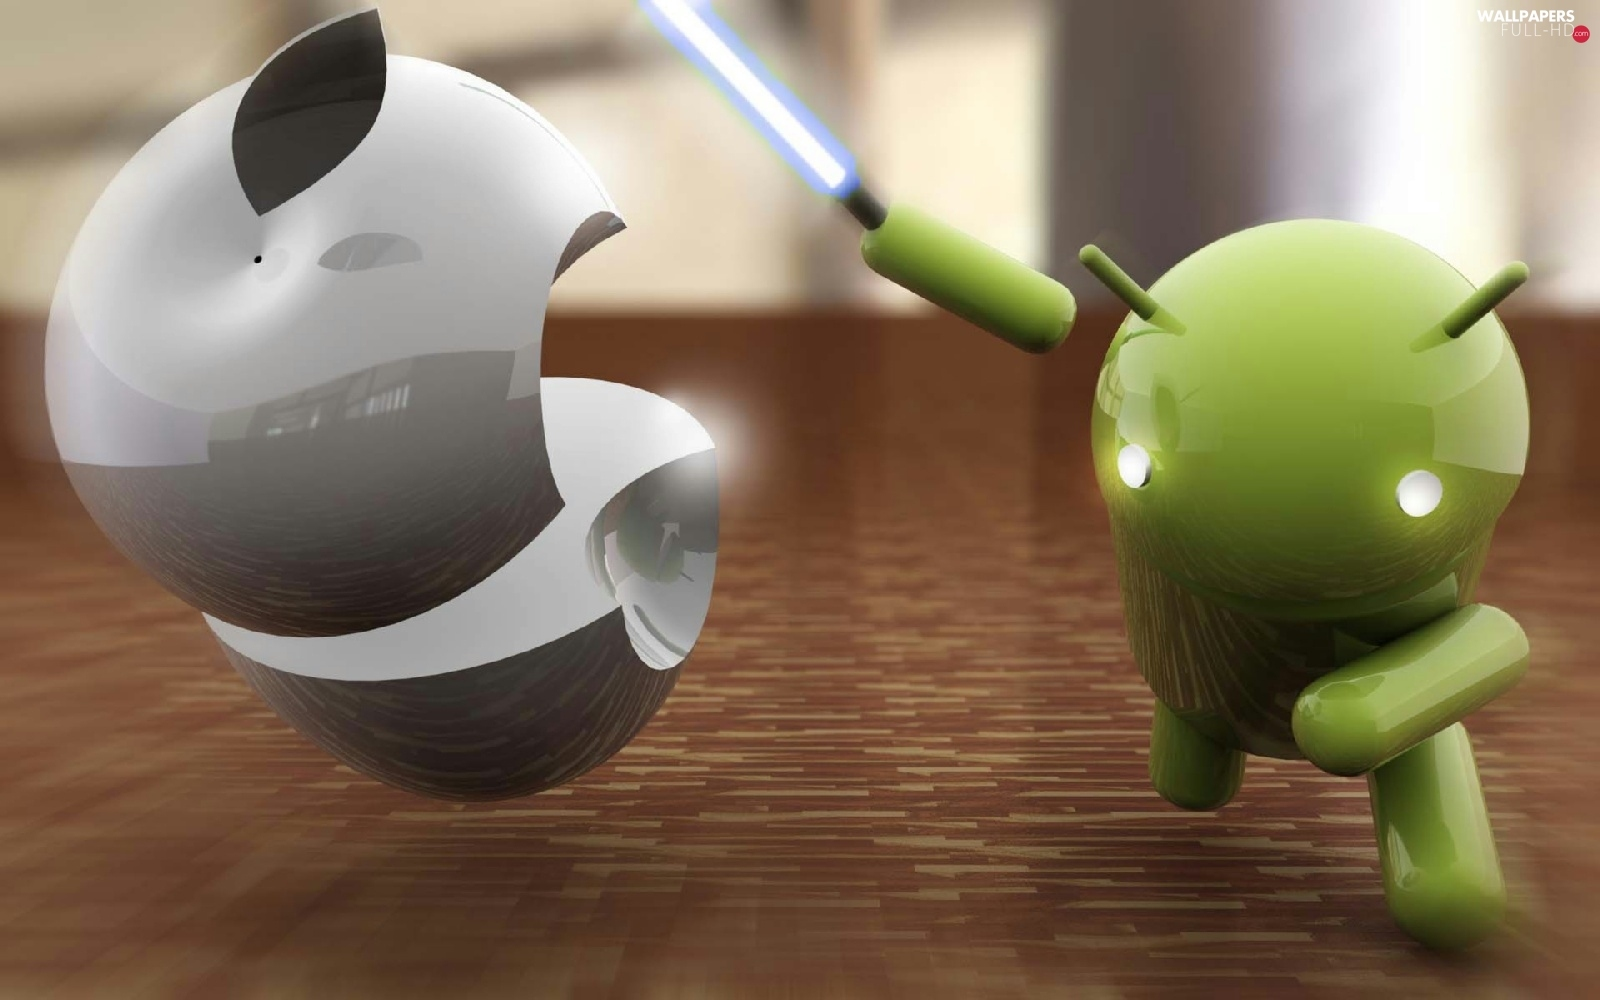 sword, Apple, Android